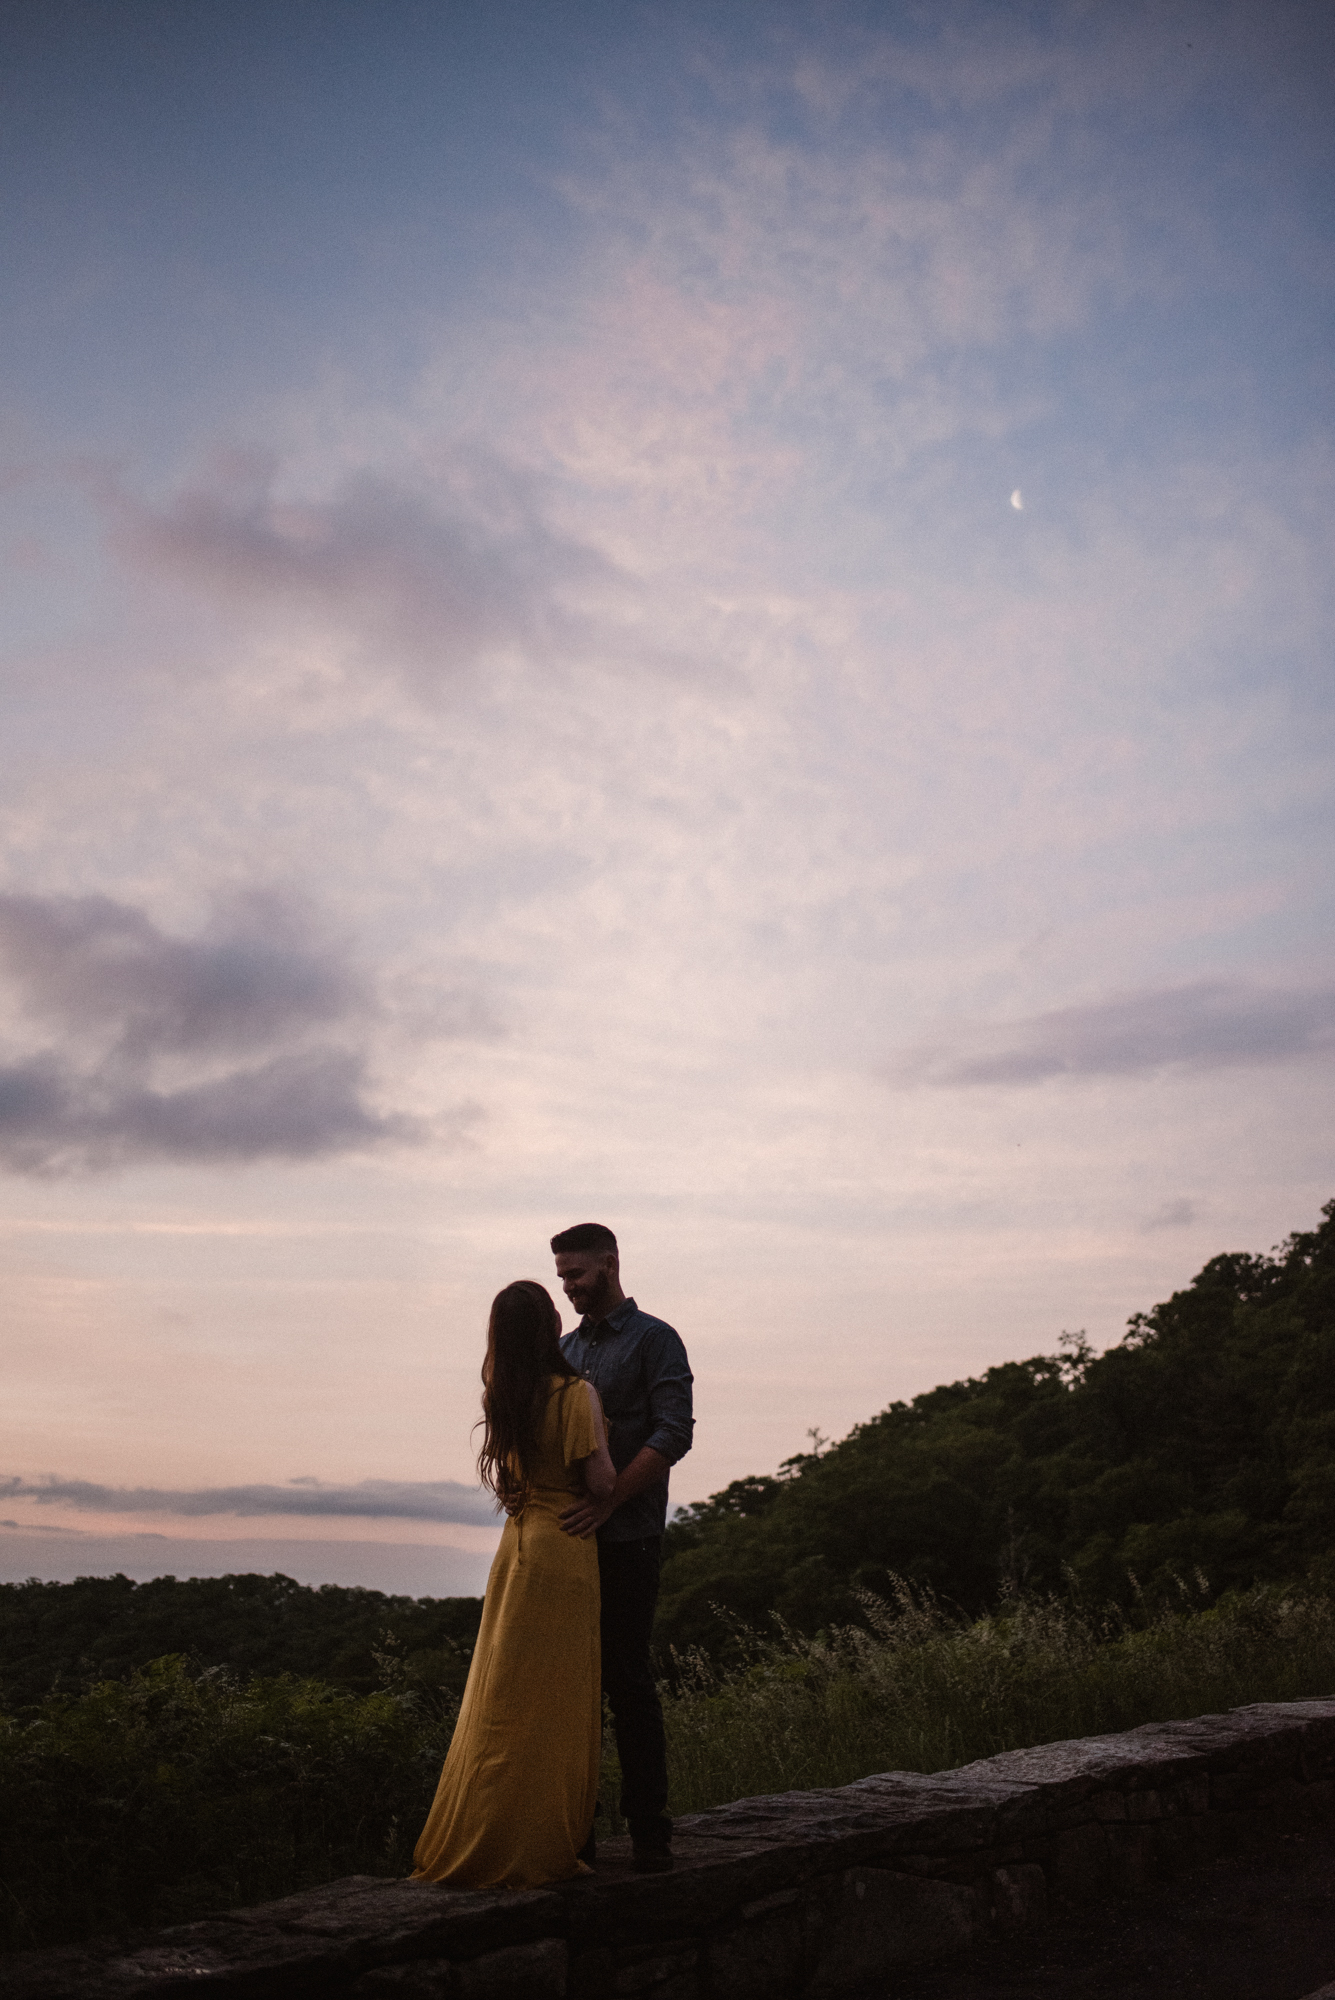 Camryn and Larry Sunrise Engagement Session in Shenandoah National Park - Things to Do in Luray Virginia - Adventurous Couple Photo Shoot White Sails Creative_19.jpg